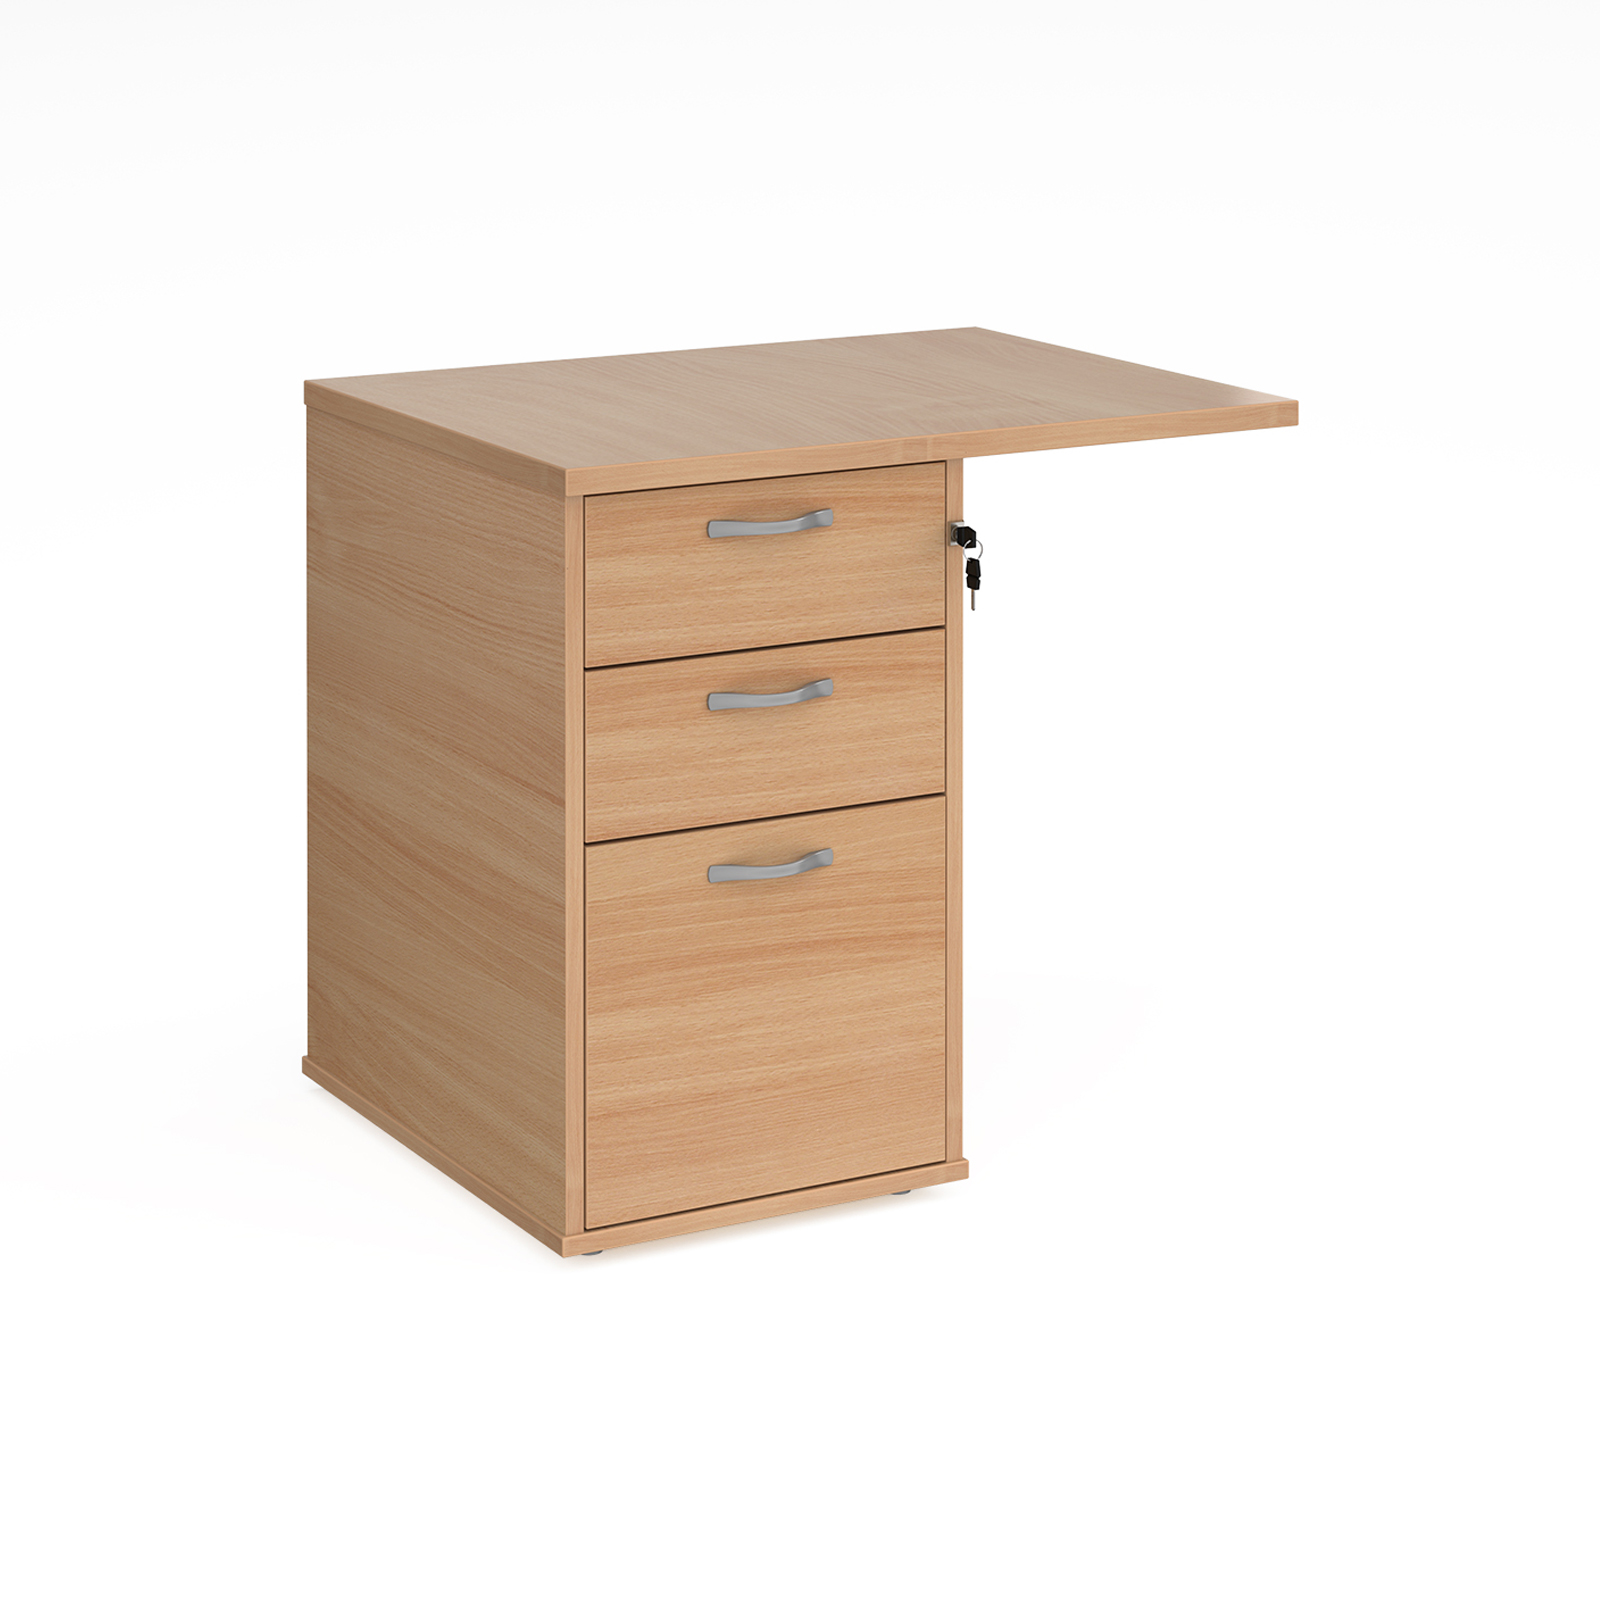 Desk extension pedestal